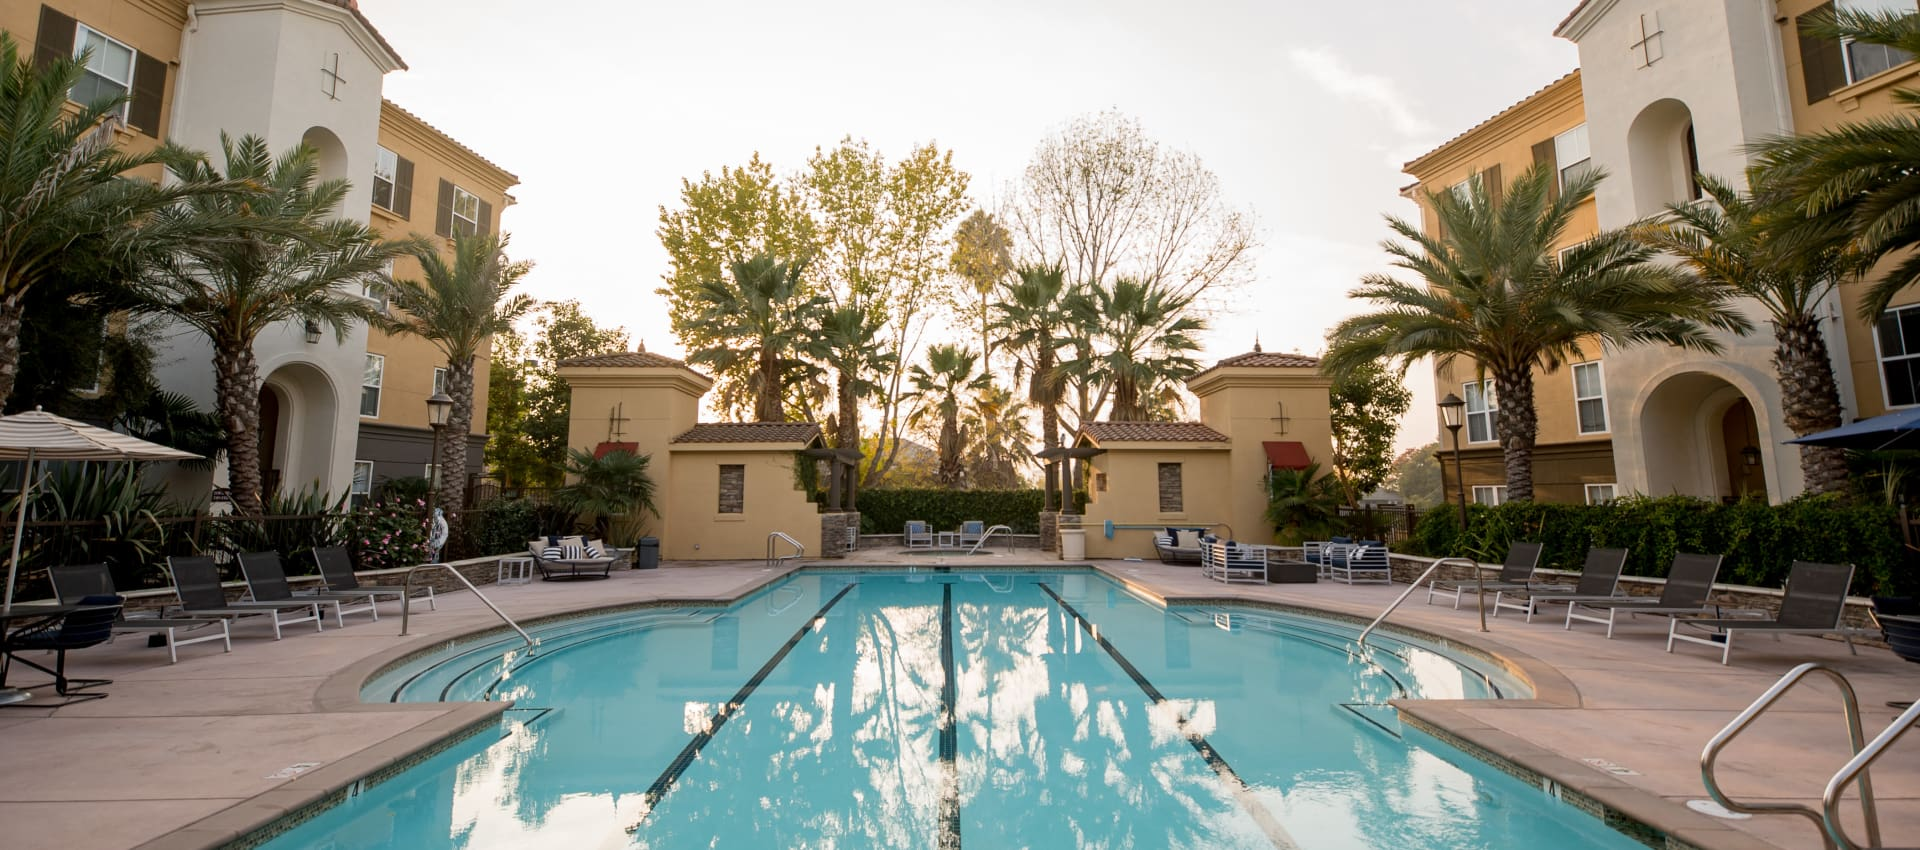 Beautiful swimming pool at Park Central in Concord, California